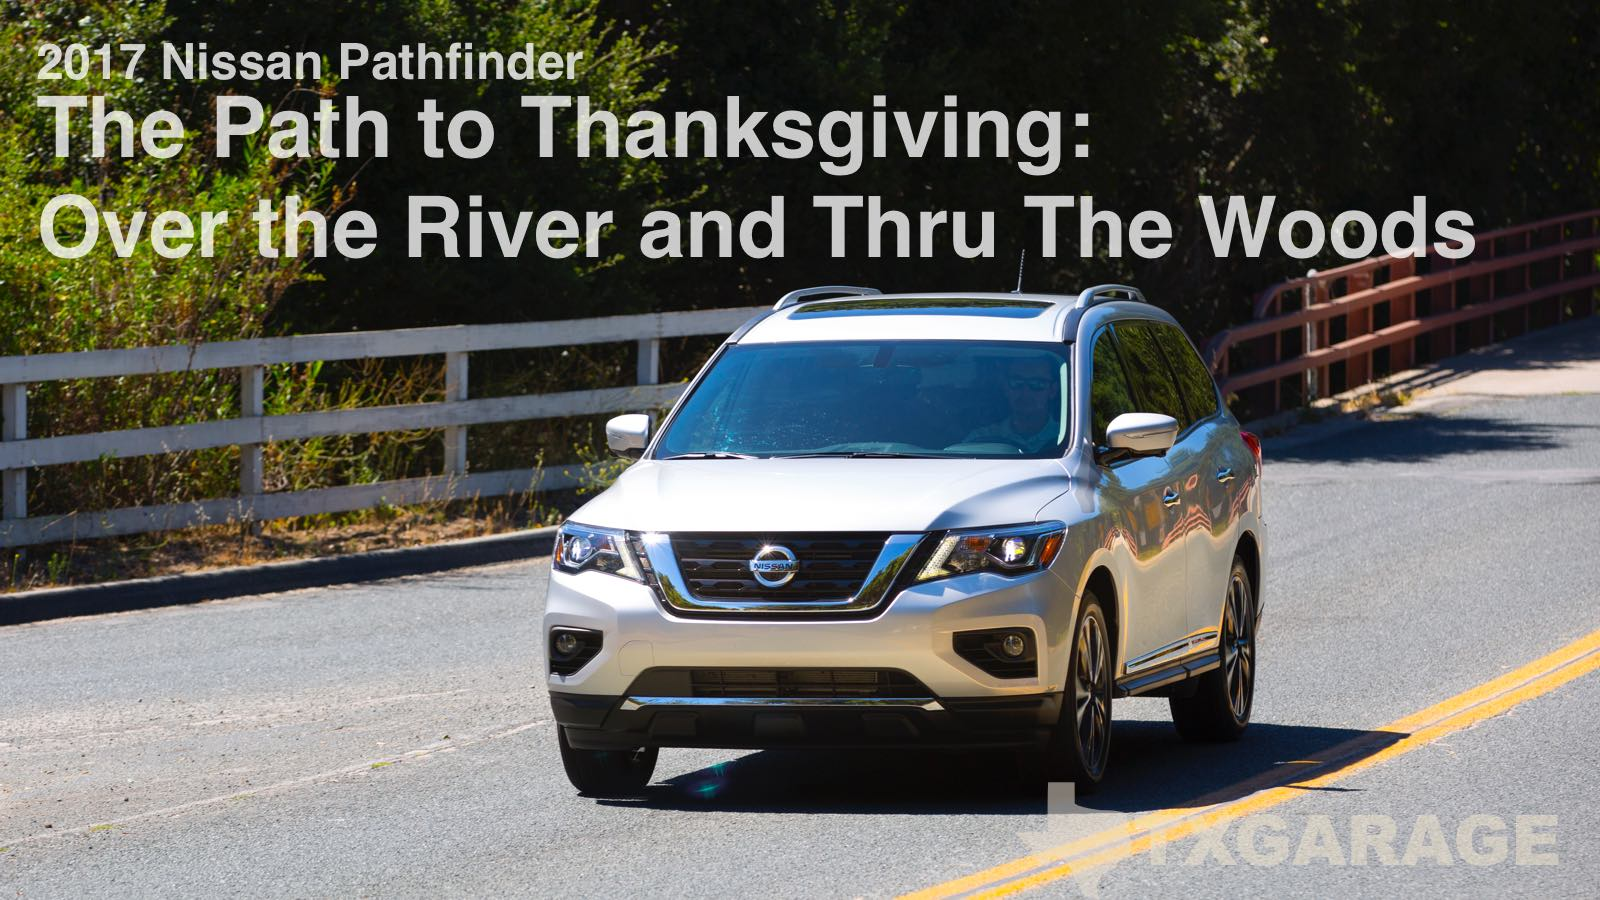 2017 Nissan Pathfinder reviewed